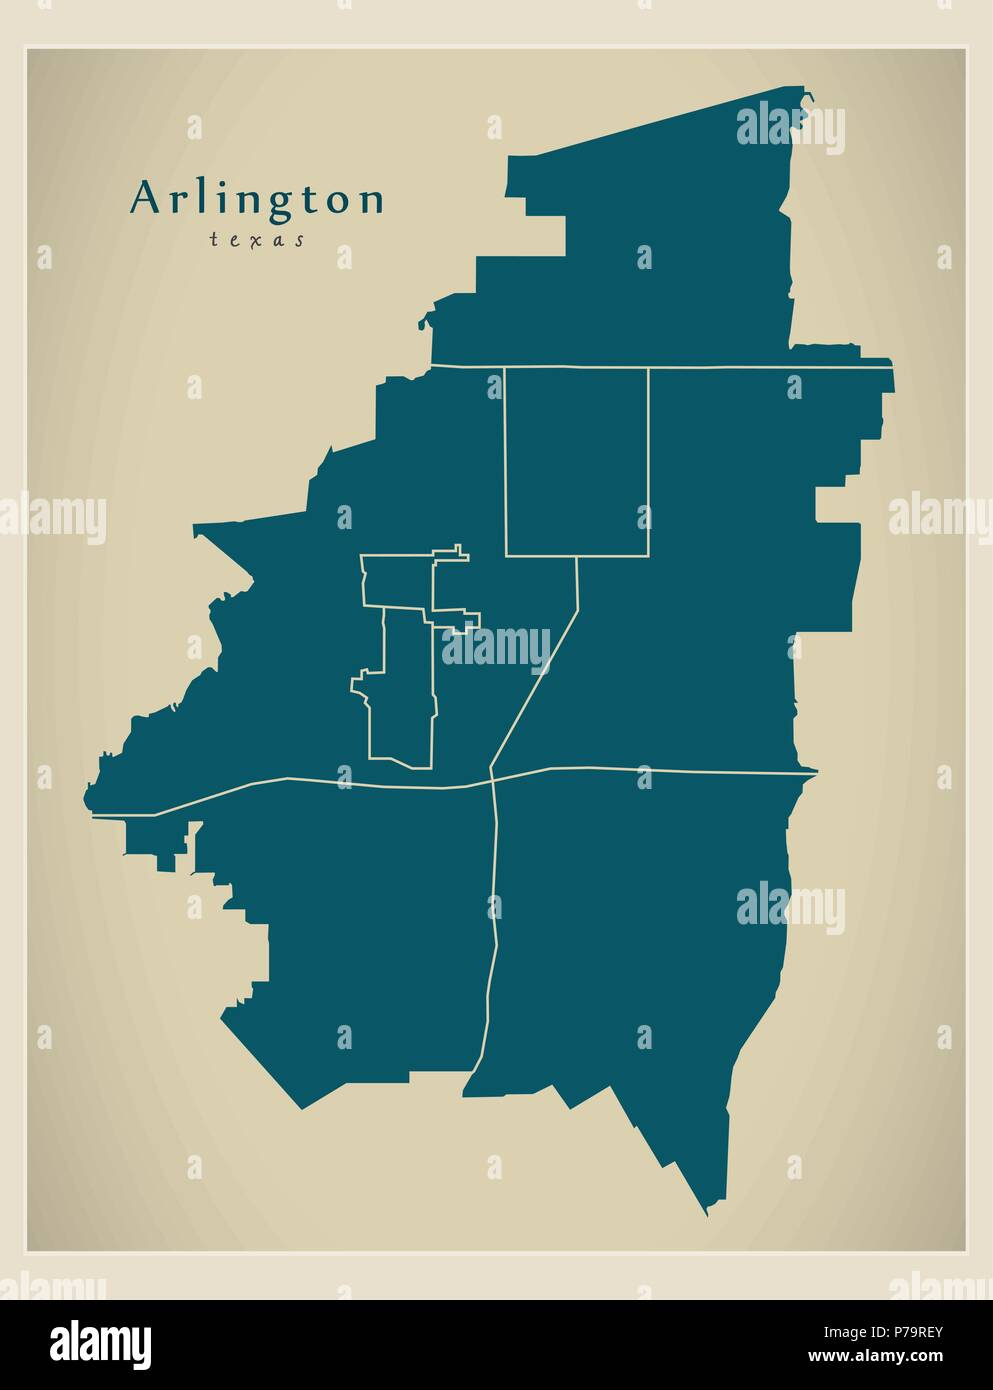 Map Of Arlington Texas.Modern City Map Arlington Texas City Of The Usa With Neighborhoods